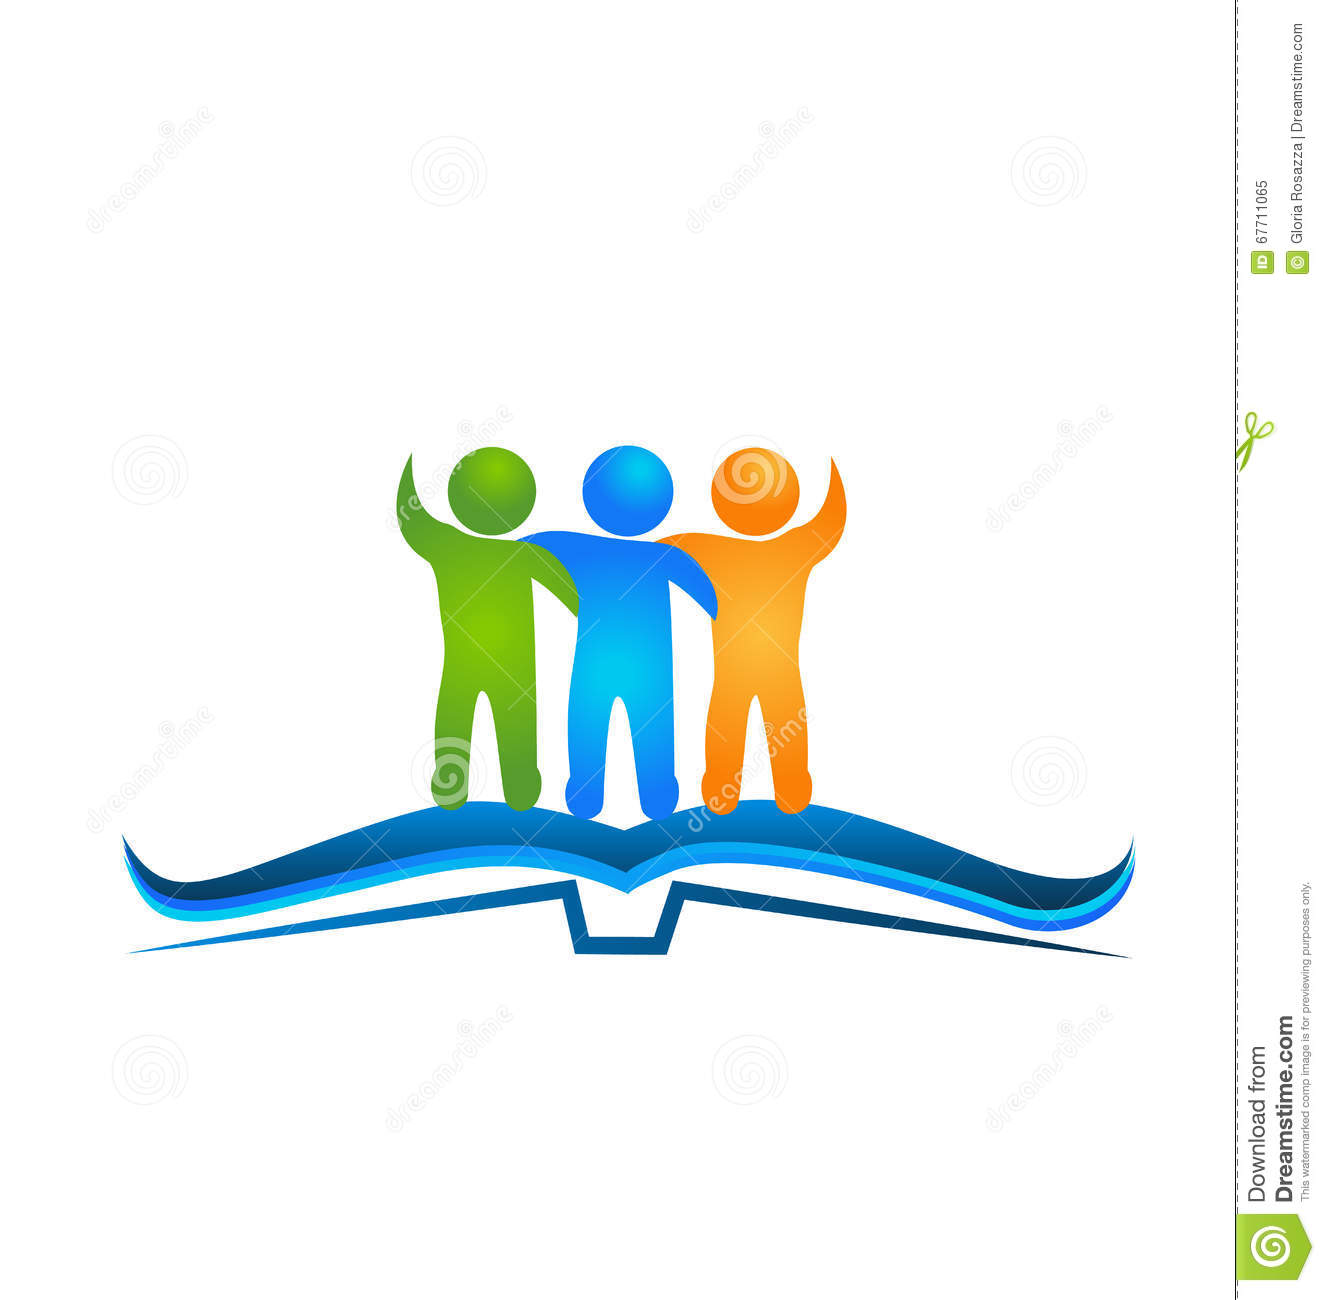 book-education-logo-open-friendship-students-figures-67711065.jpg